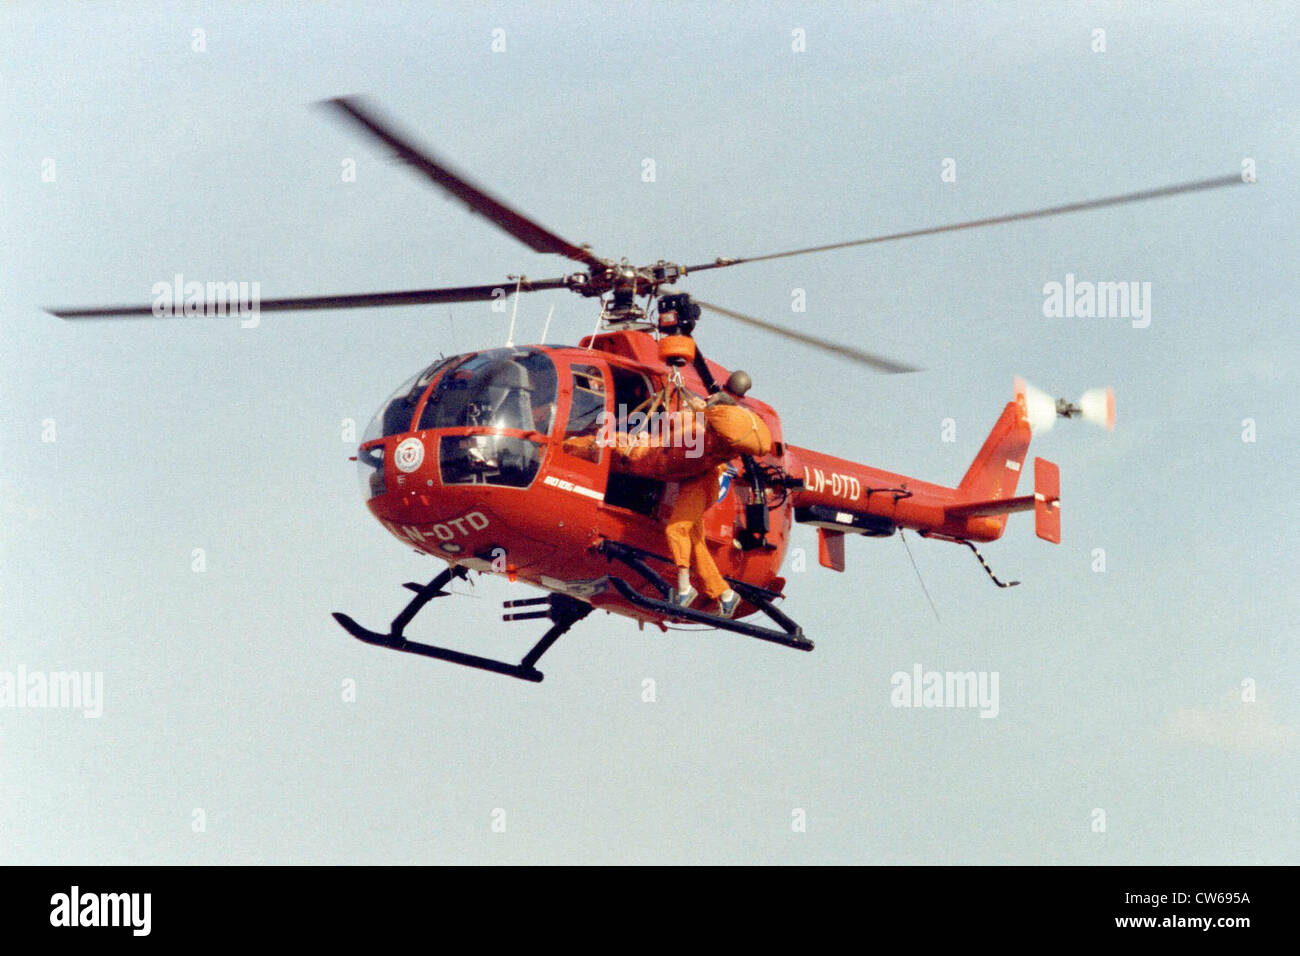 German MBB Bo-105 CBS helicopter. - Stock Image